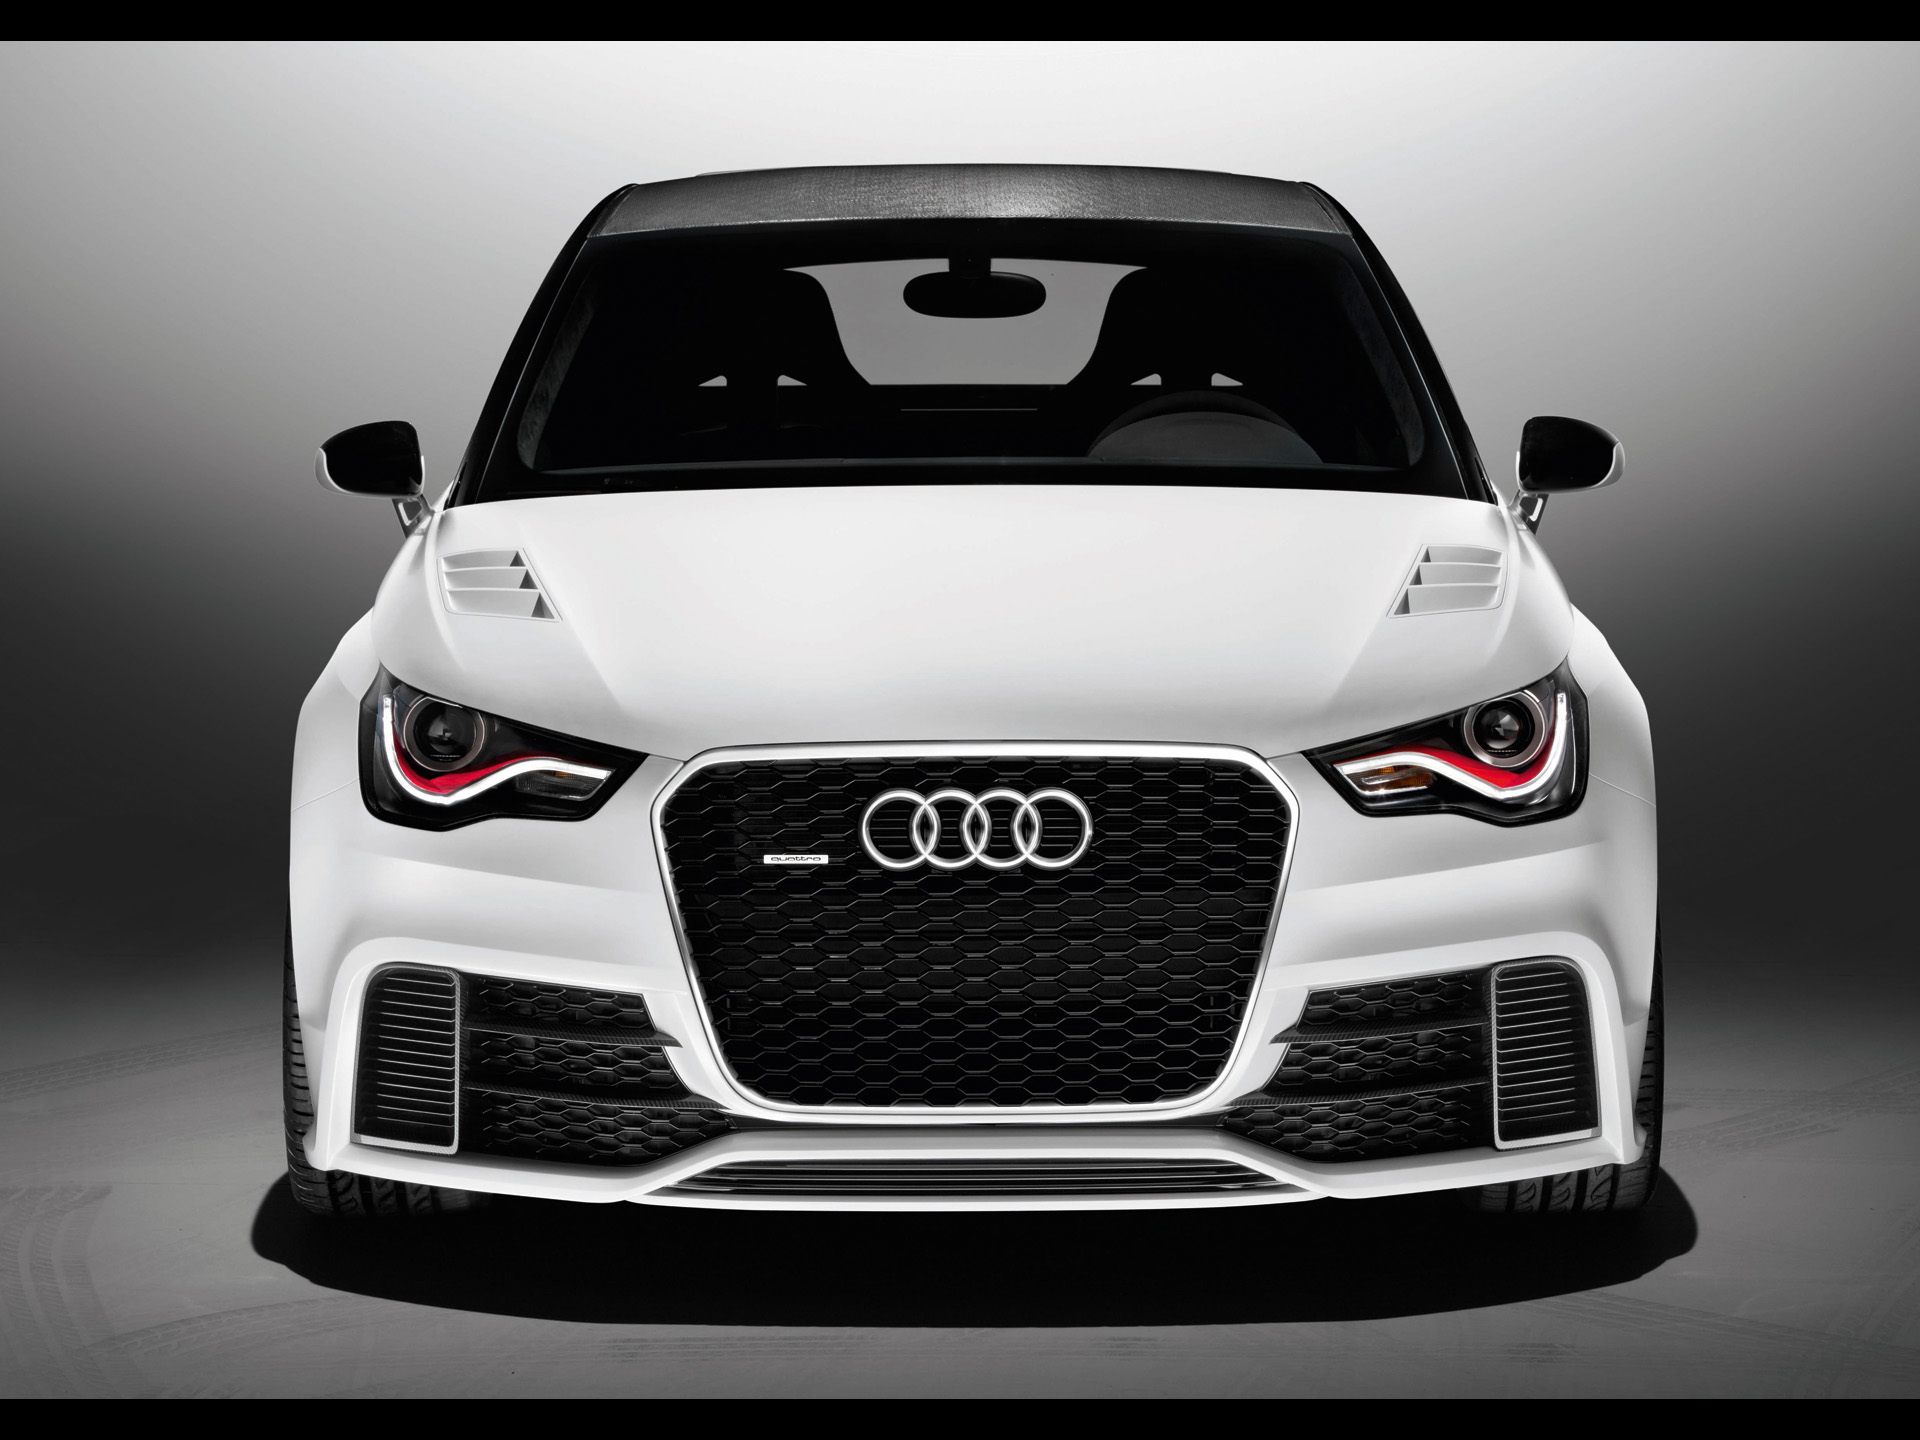 1920x1440 - Audi A1 Wallpapers 29